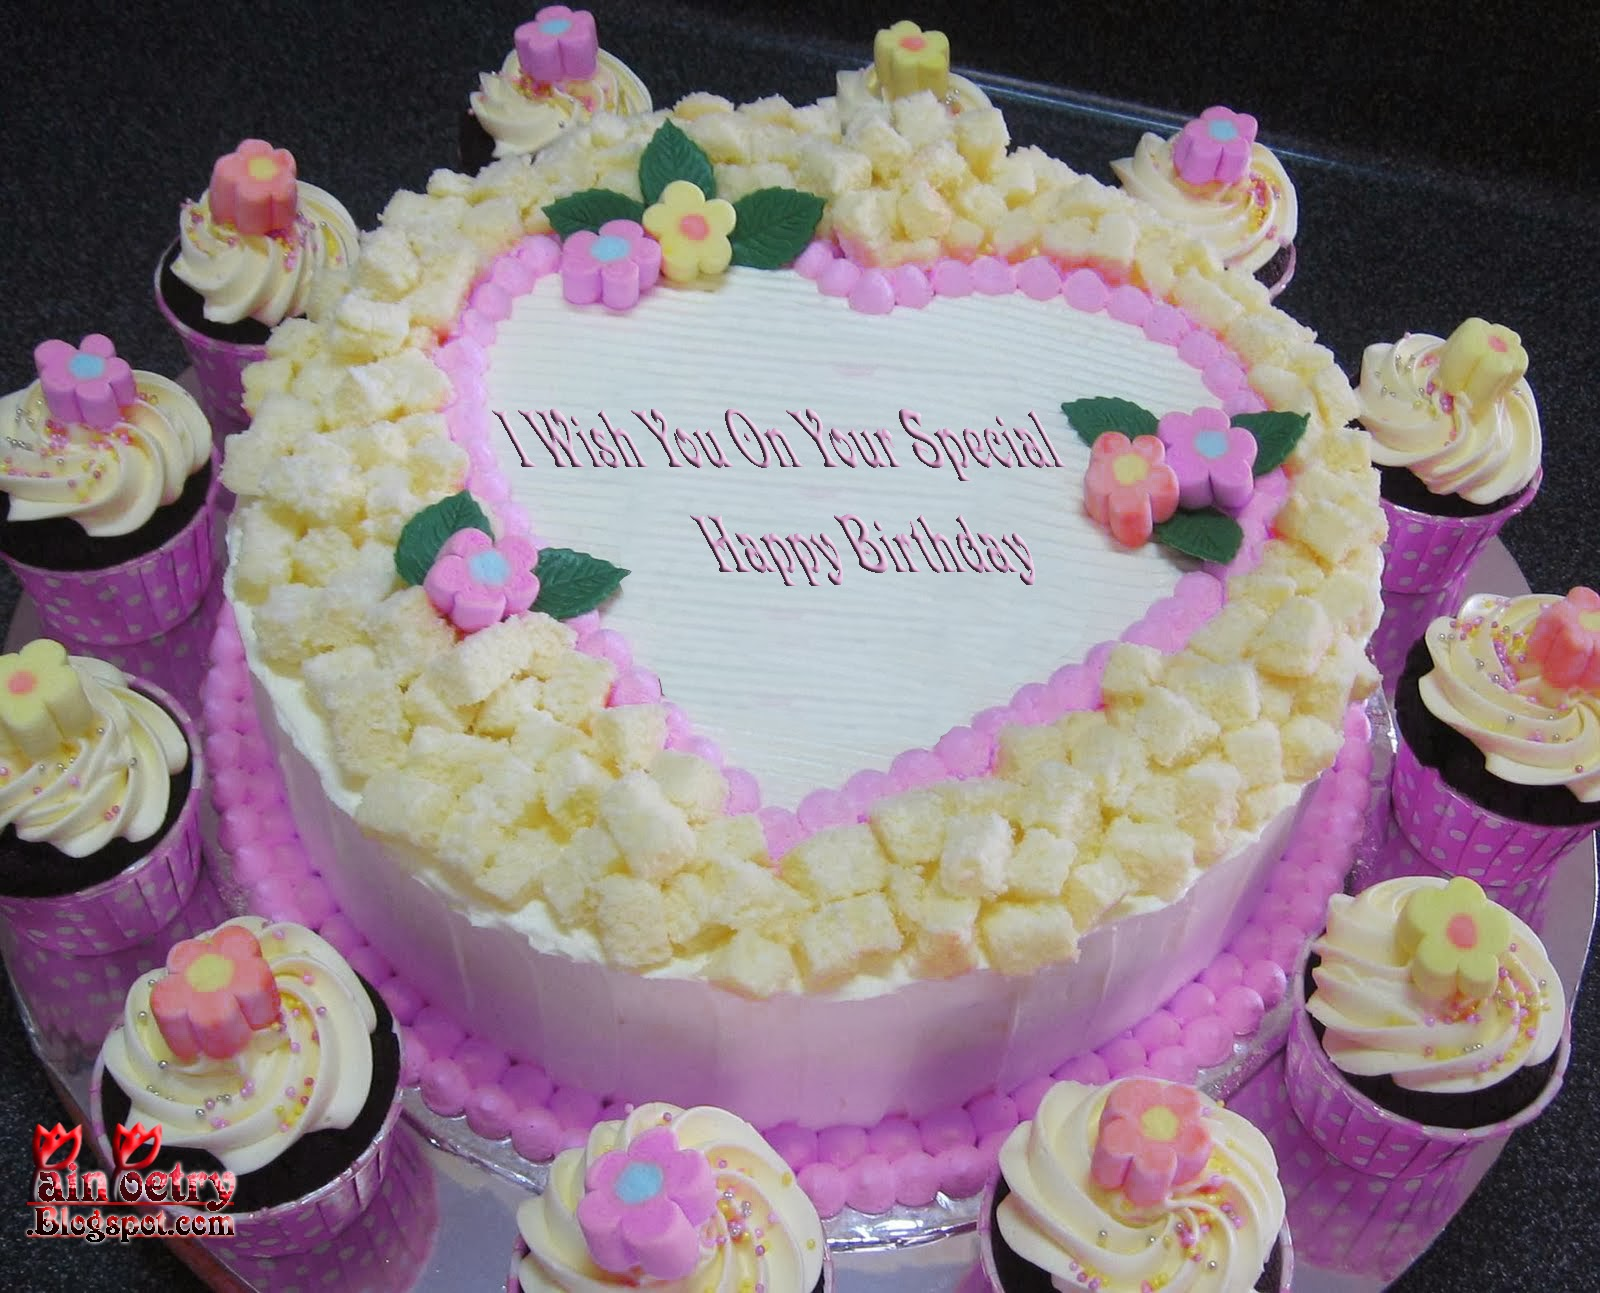 Happy-Birthday-Cake-Wishes-Image-In-Pink_colour-Image-HD-Wide